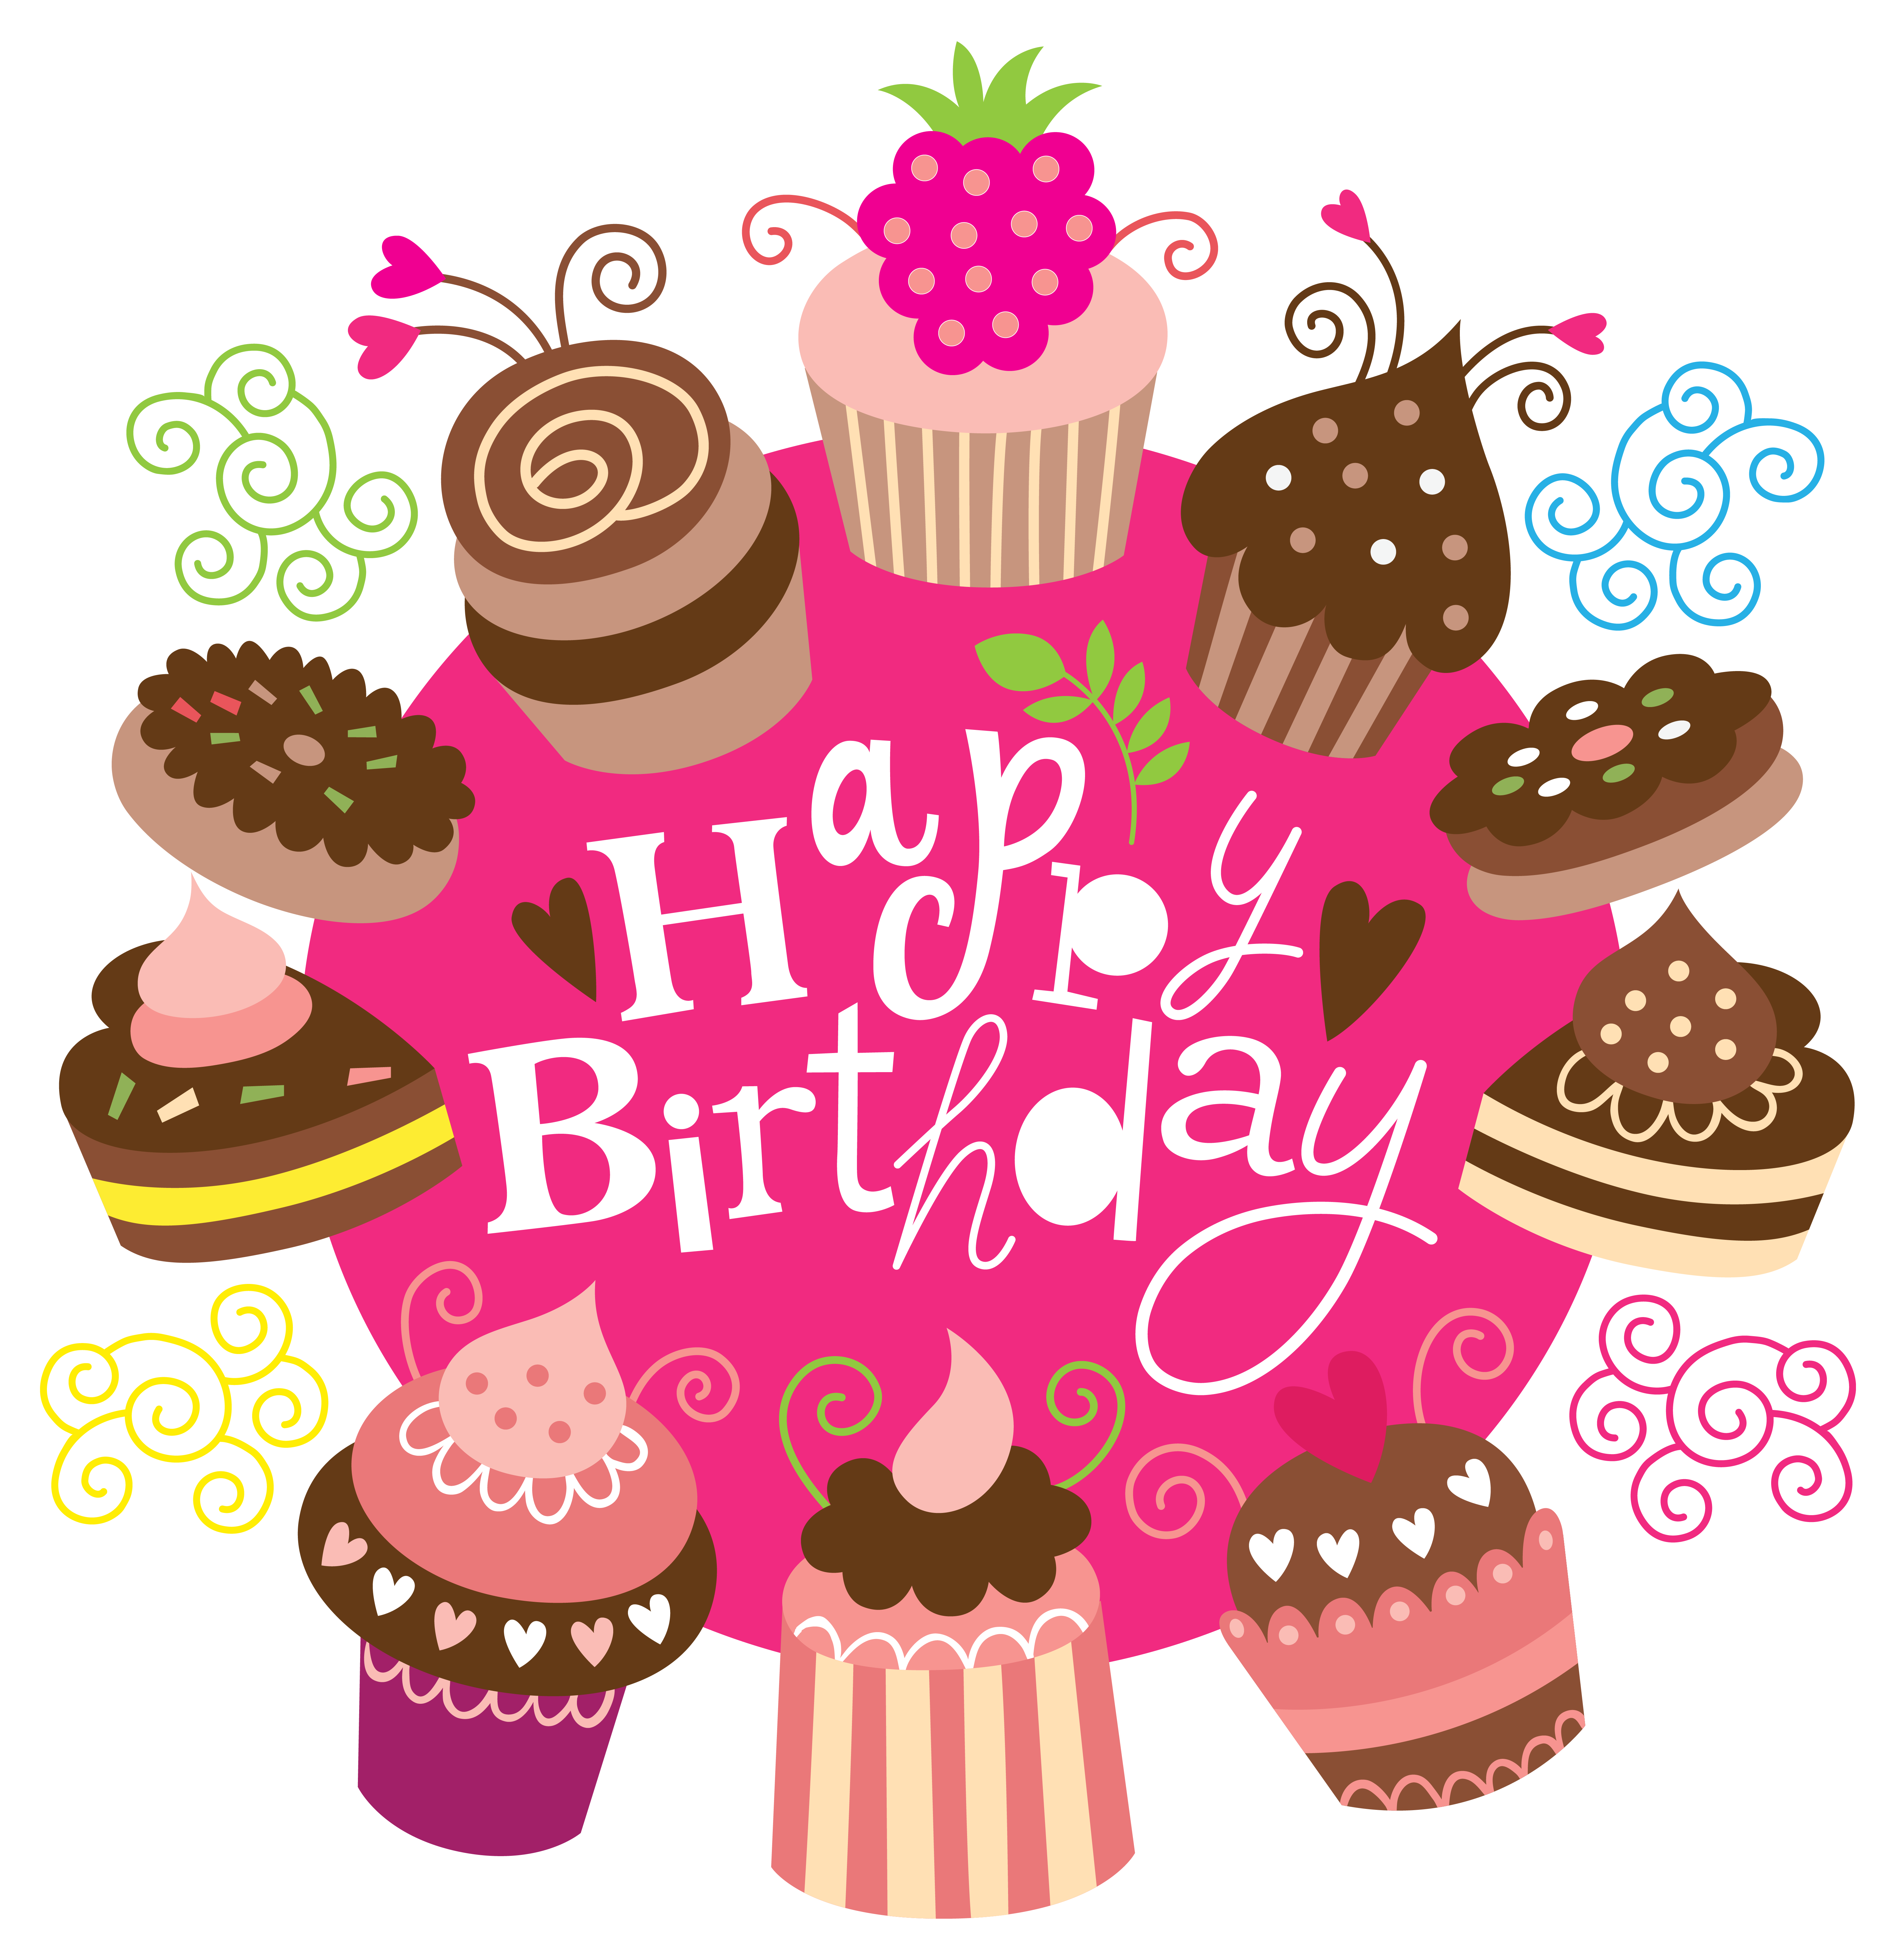 Clipart Happy Birthday & Happy Birthday Clip Art Images.